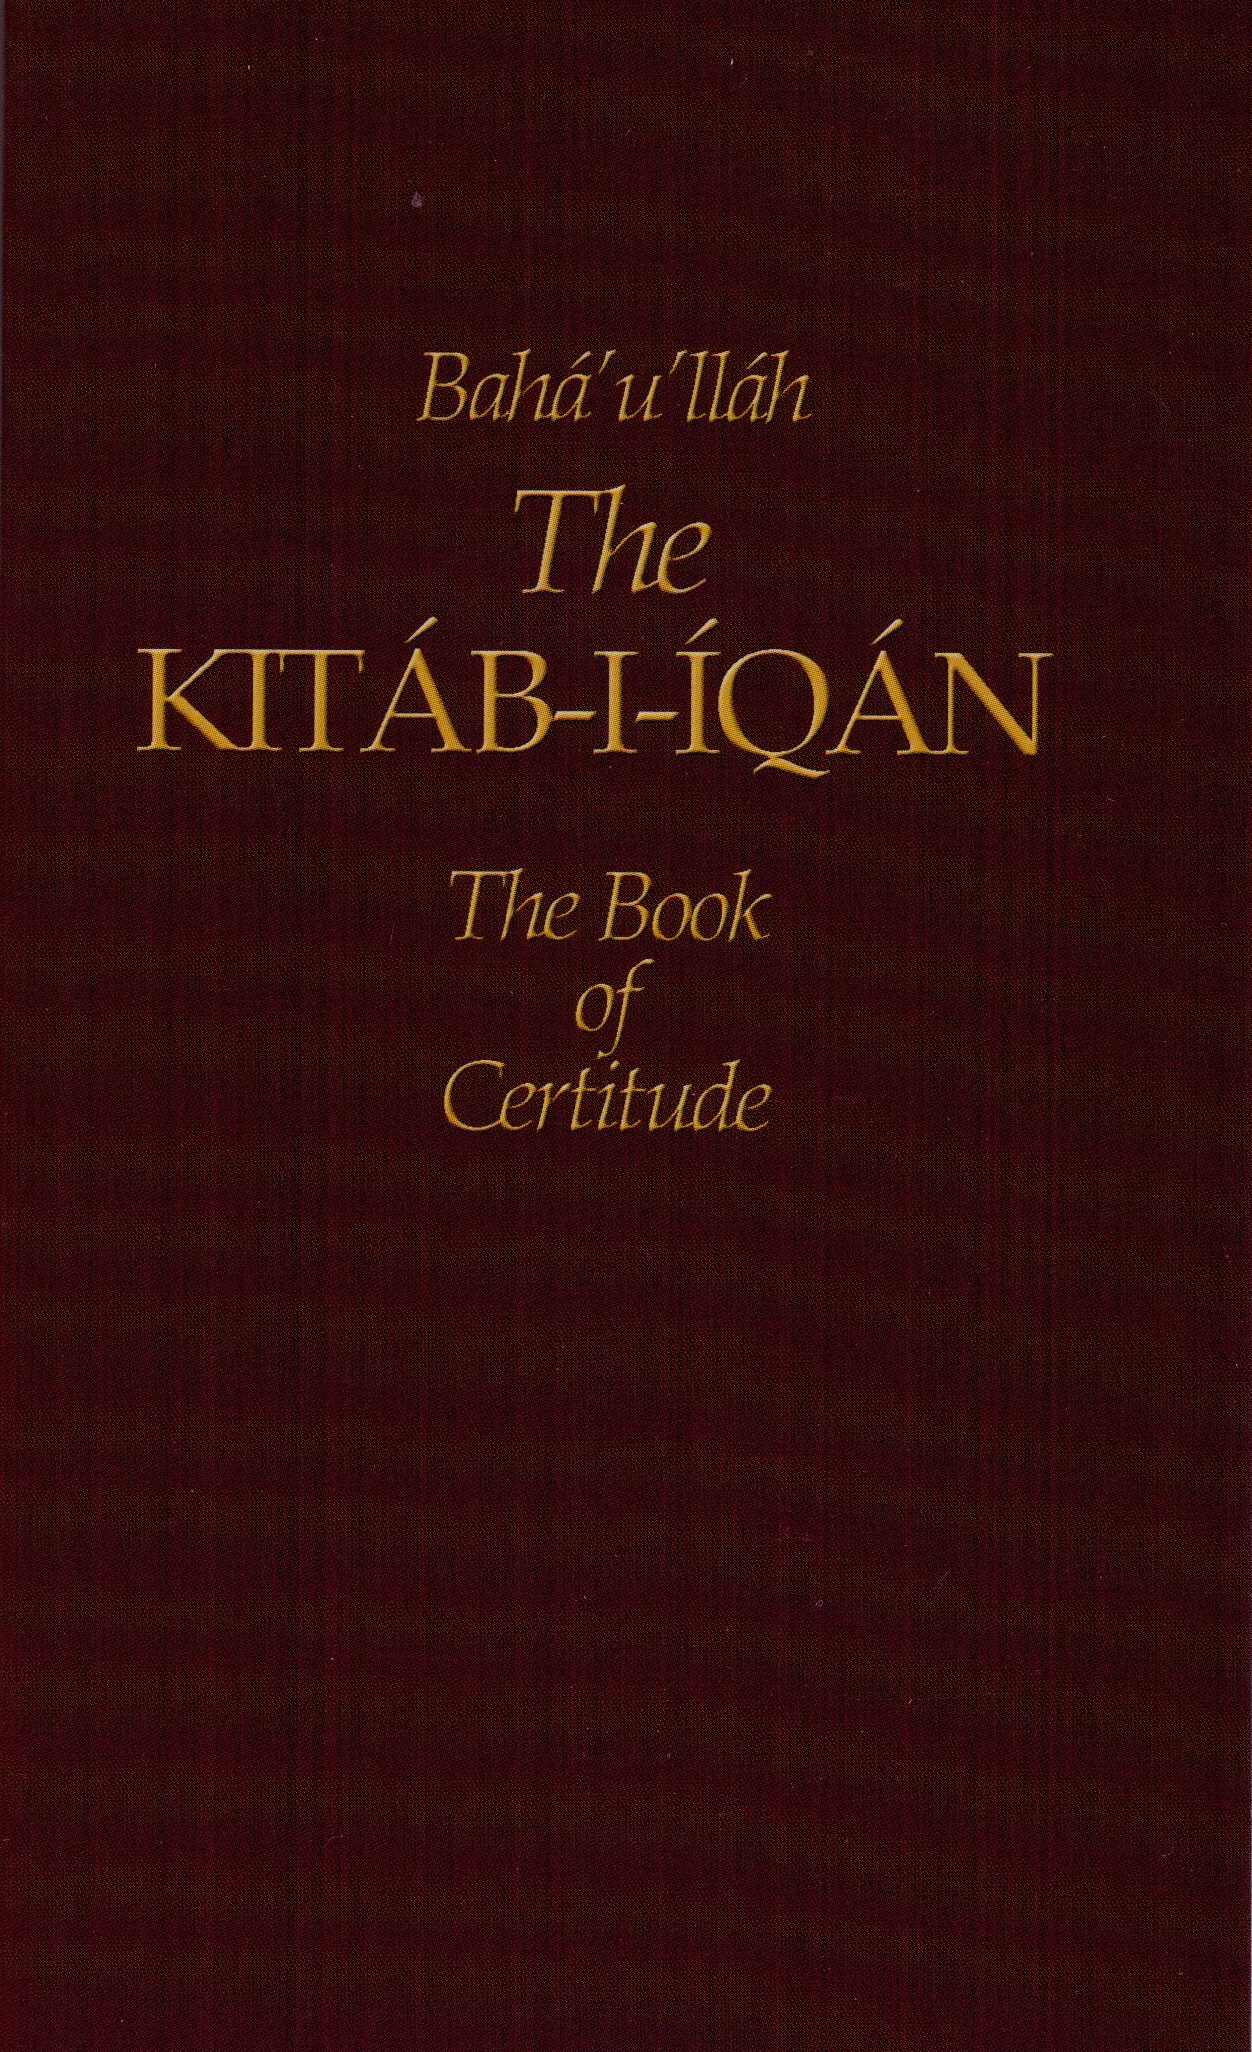 Kitab-i-Iqan (Pocket) :: Peaceful Pages: peacefulpages.com/product/Kitab-i-Iqan_(Pocket).aspx